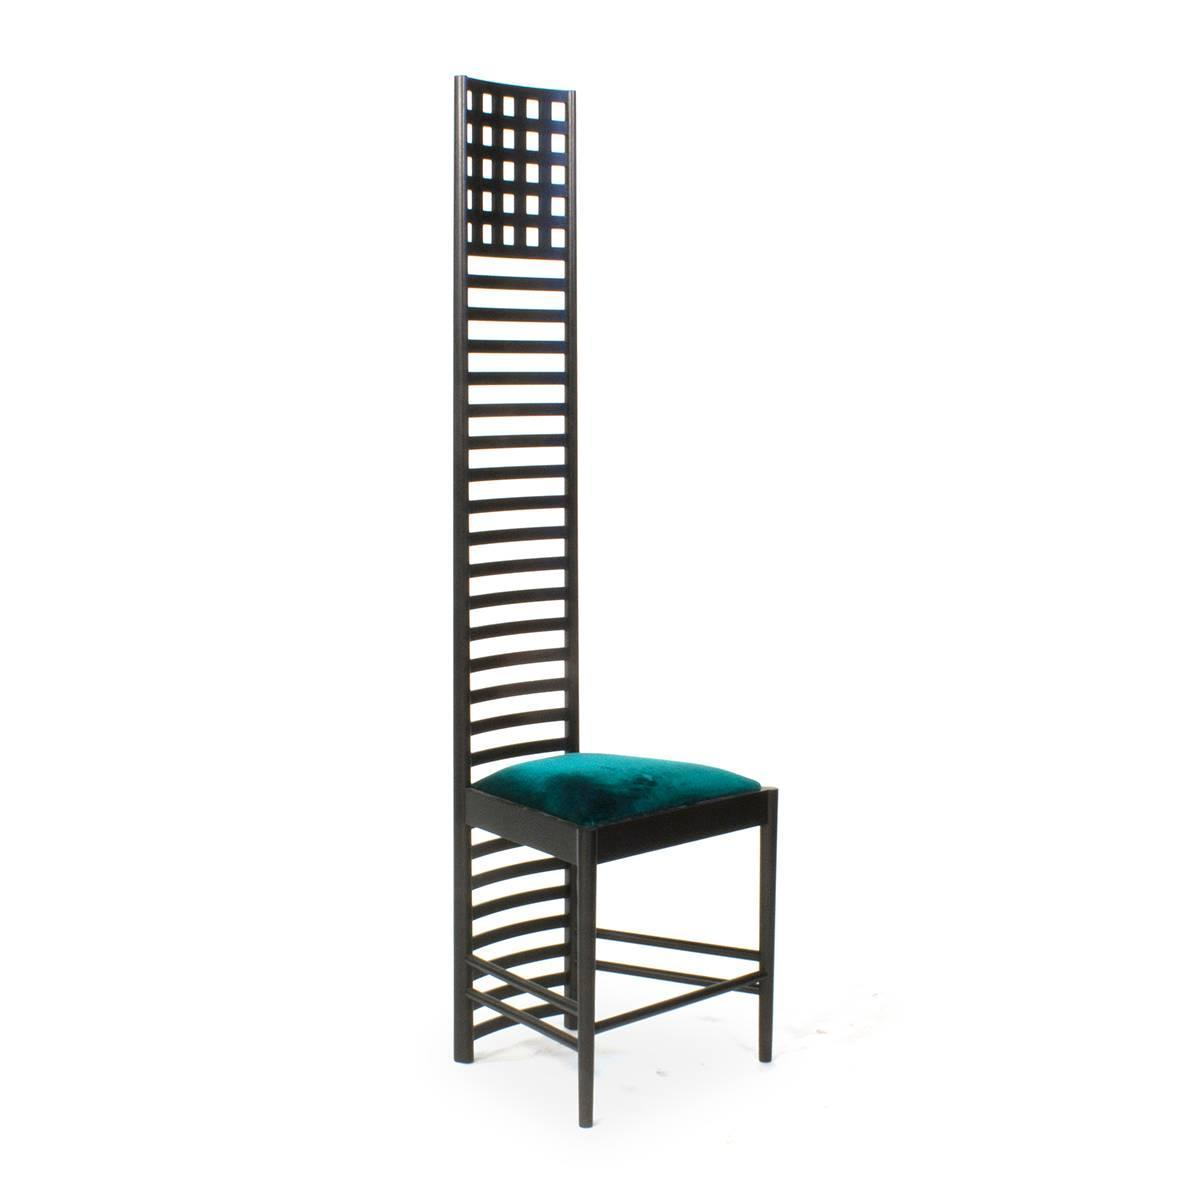 the gallery for charles rennie mackintosh hill house. Black Bedroom Furniture Sets. Home Design Ideas